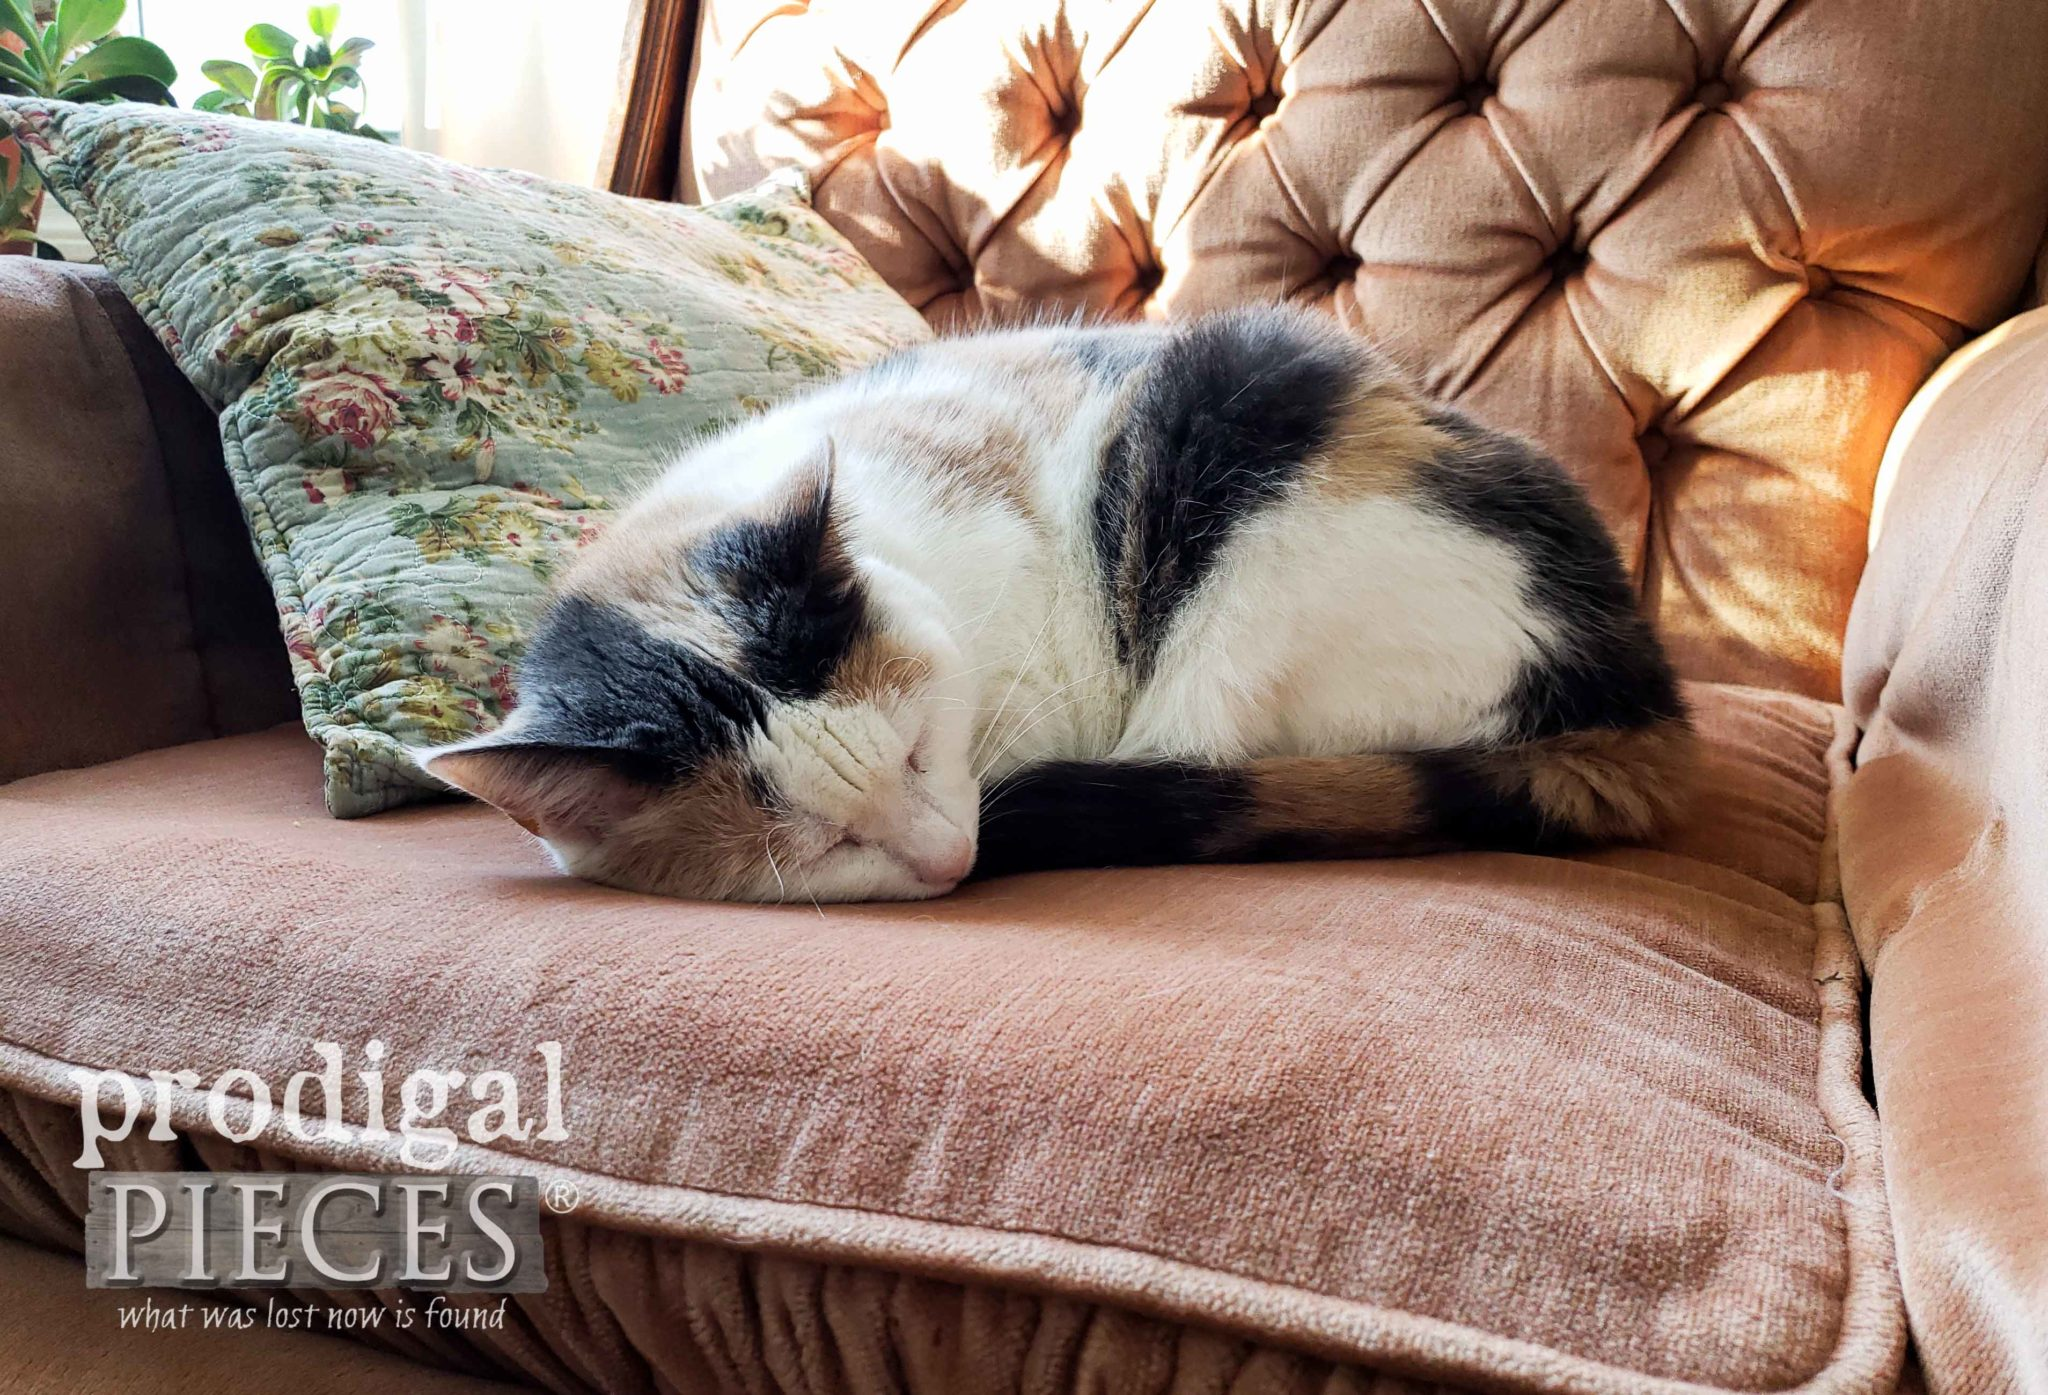 Calico Cat Sleeping on Chair | prodigalpieces.com #prodigalpieces #homeisthekey #home